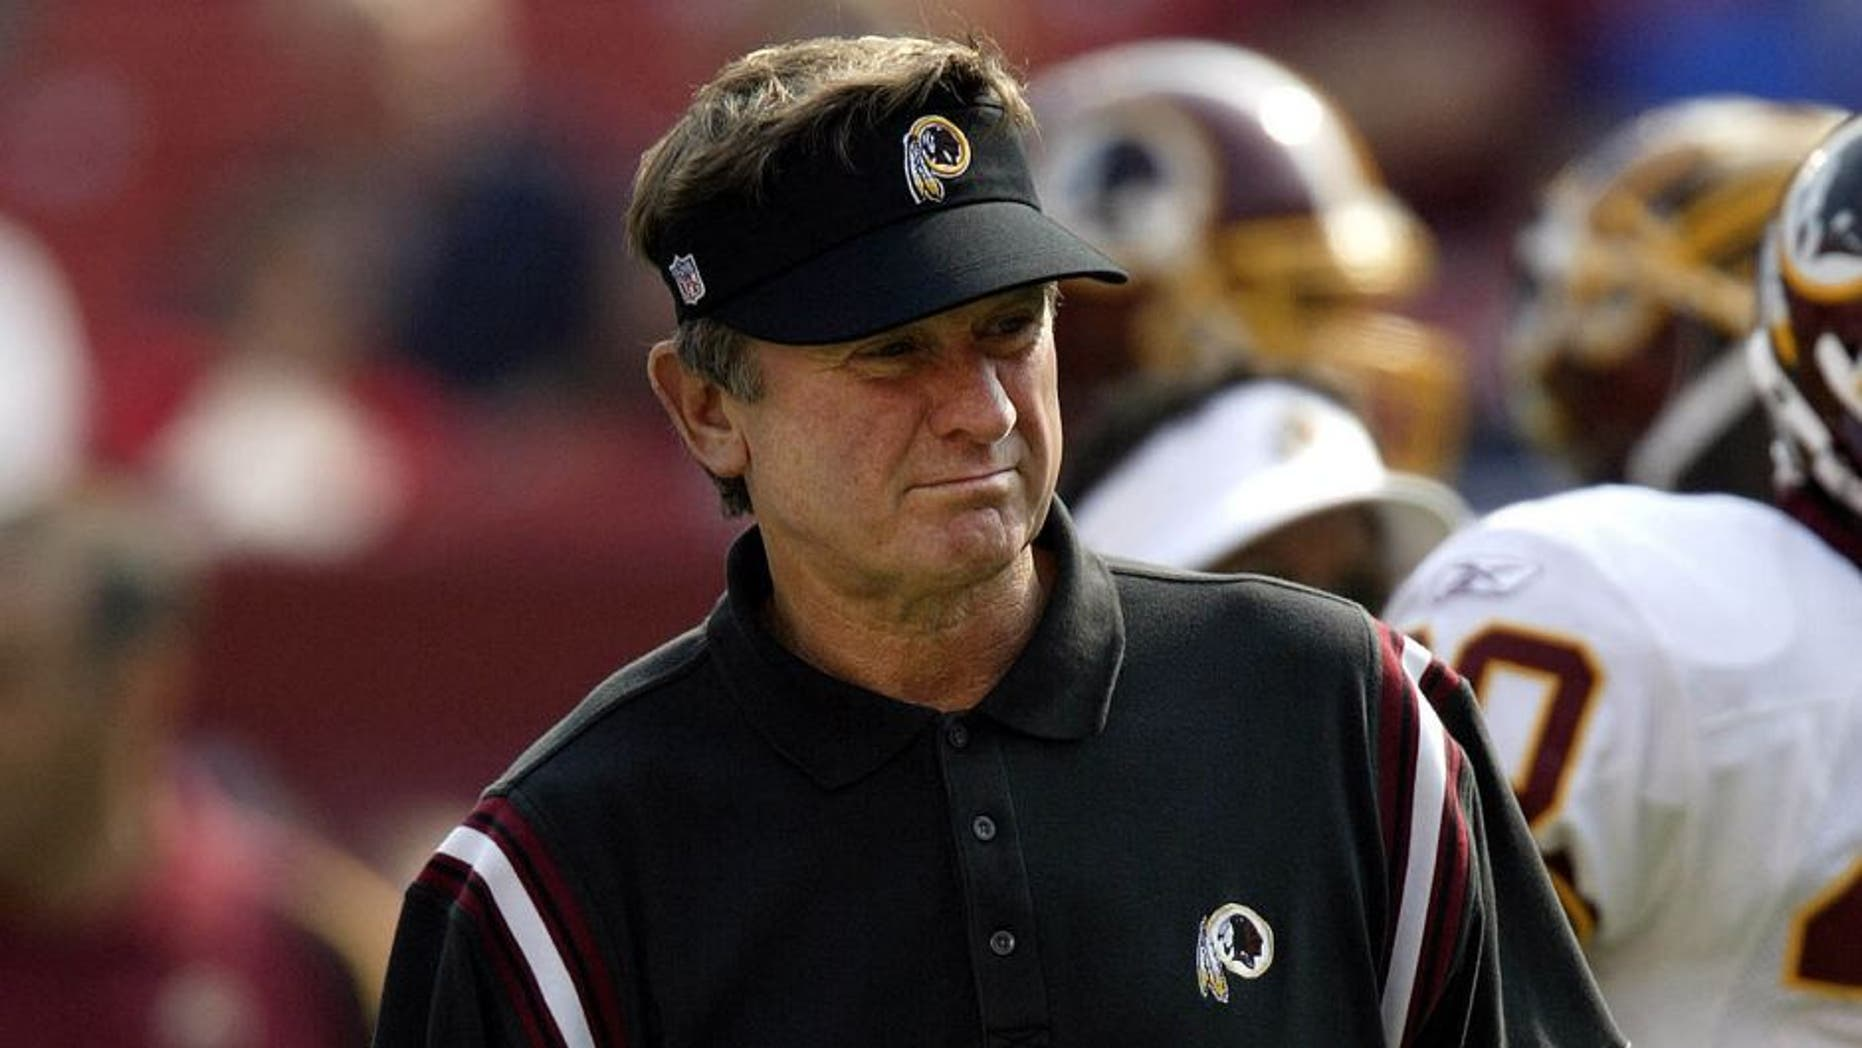 21 Sept 2003: Head coach Steve Spurrier of the Washington Redskins during the Skins' 24-21 loss to the New York Giants at Fedex Field in Washington, DC. Mandatory Credit: Bob Leverone/Sporting News/Icon SMI